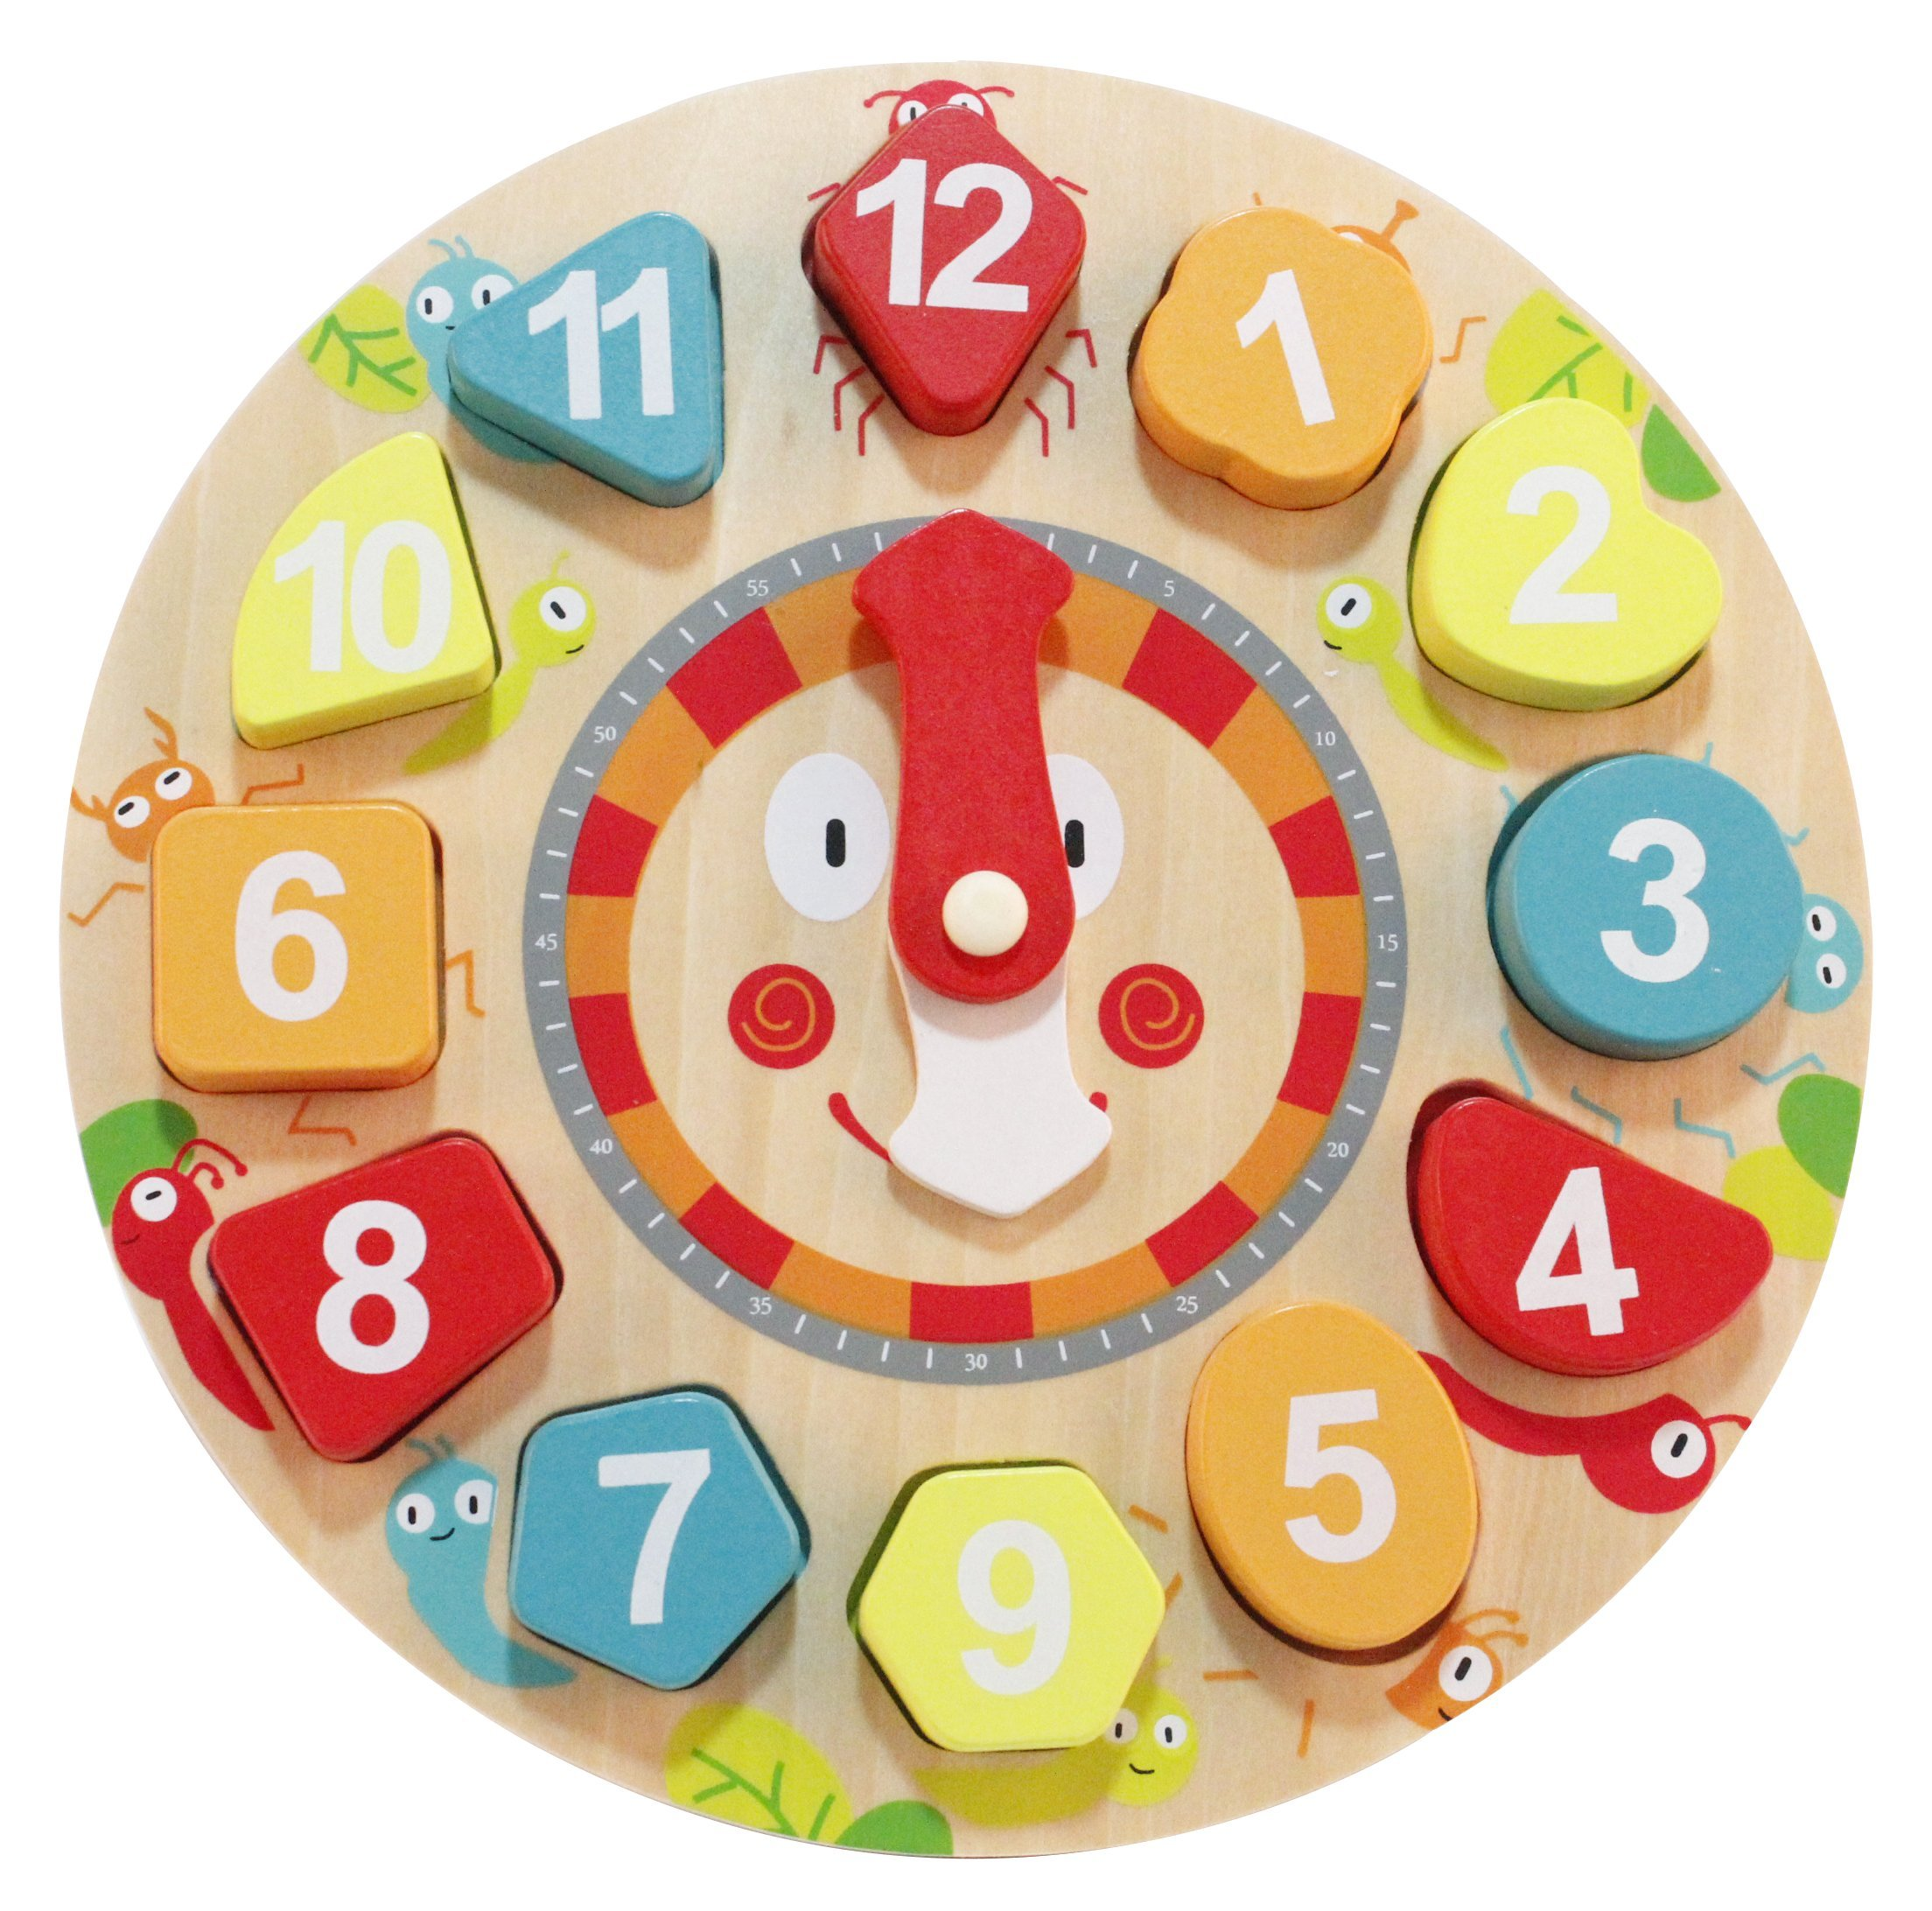 Babe Rock Sorting Clock - Wooden Shape Sorting Clock Puzzle Toy Teaching Learning Tell Time for Kids